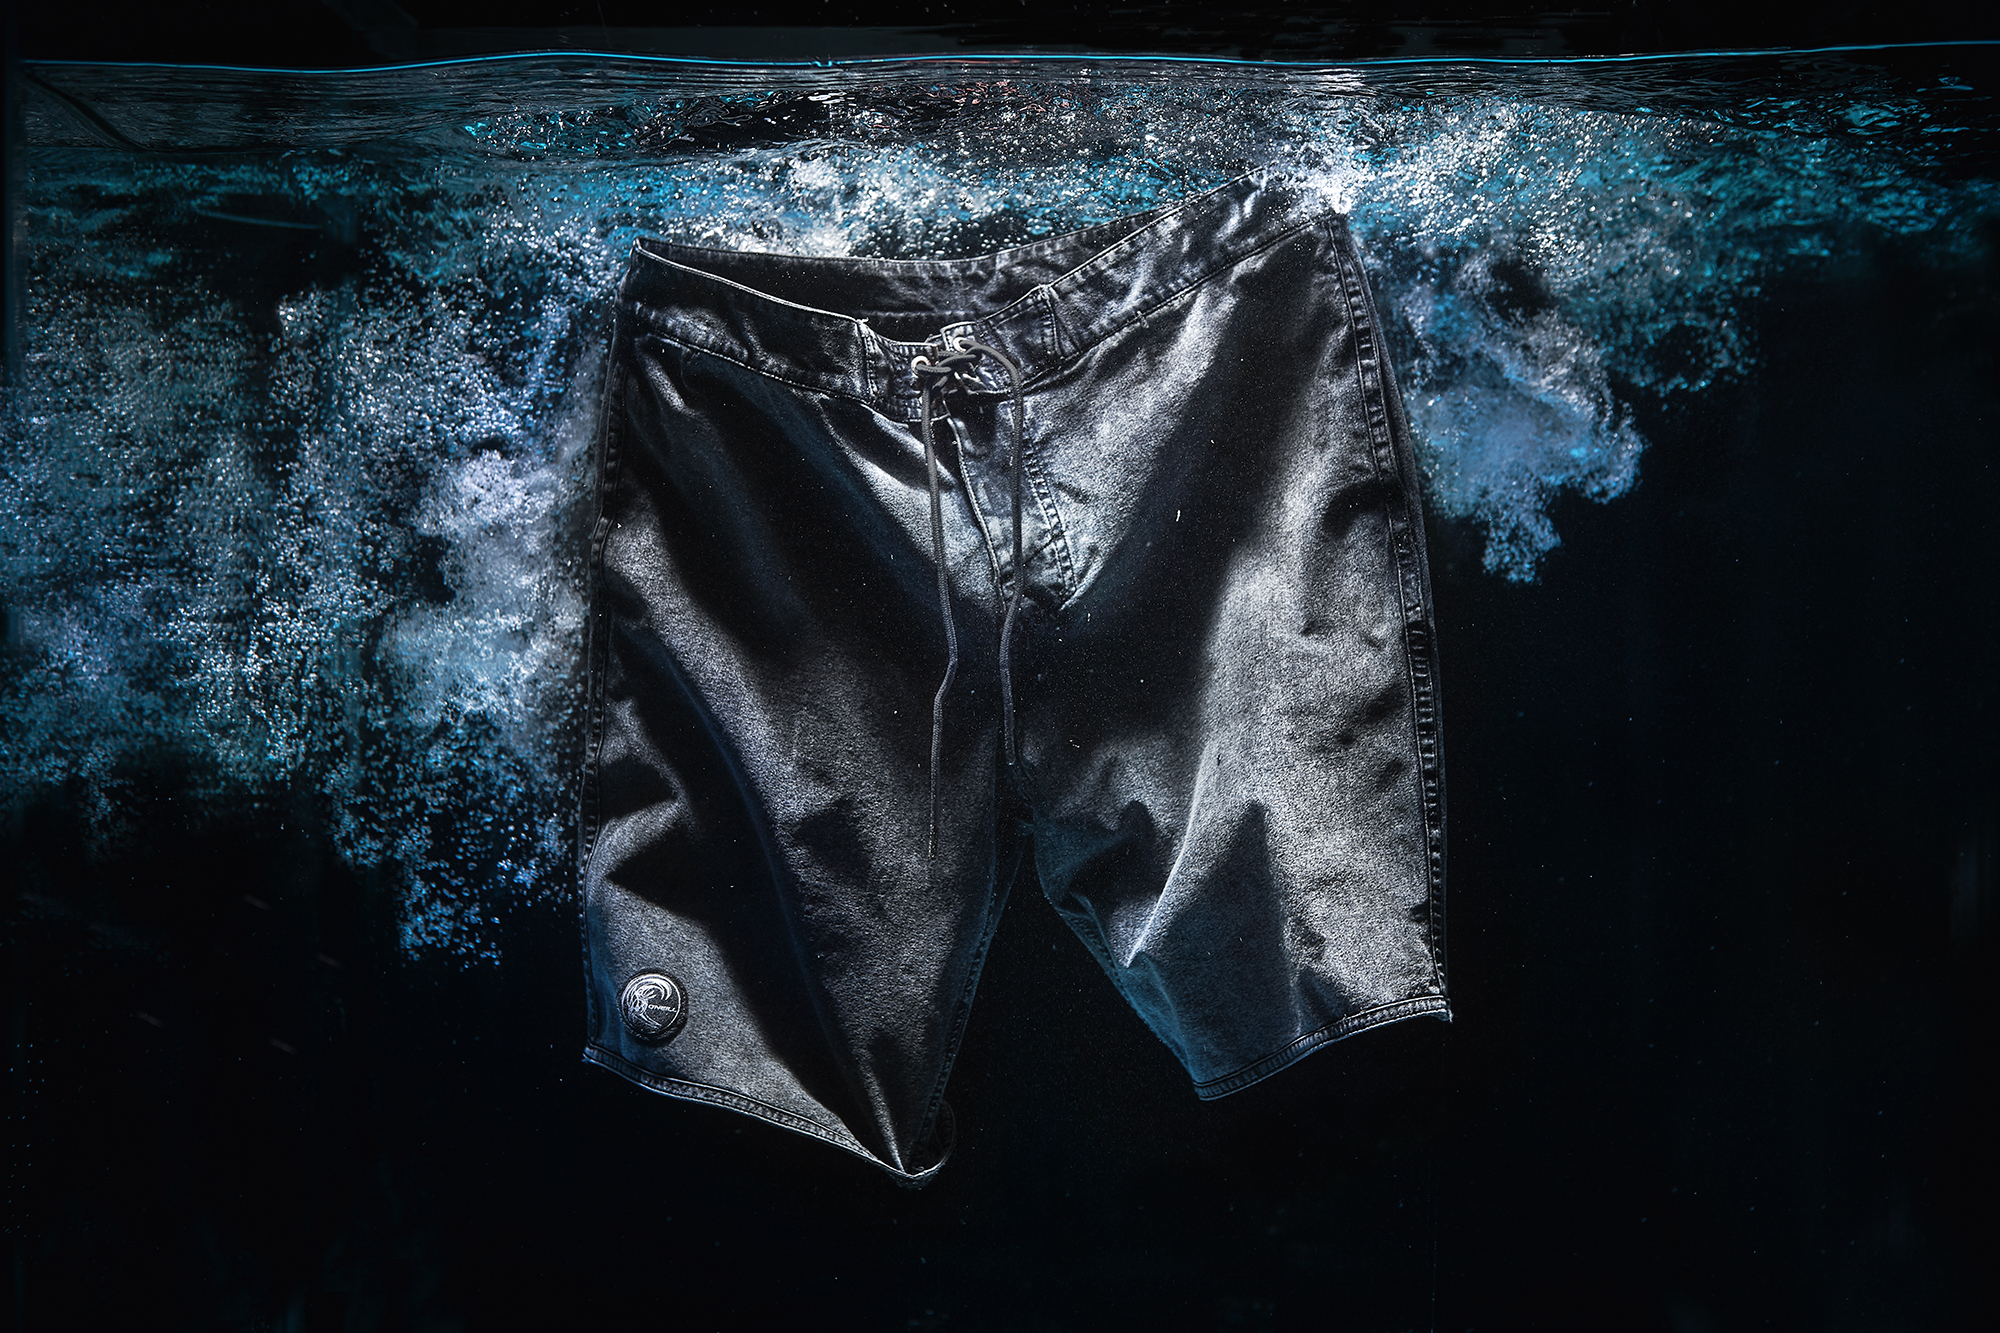 Denim Boardshort By ISKO In Collaboration With O'Neill